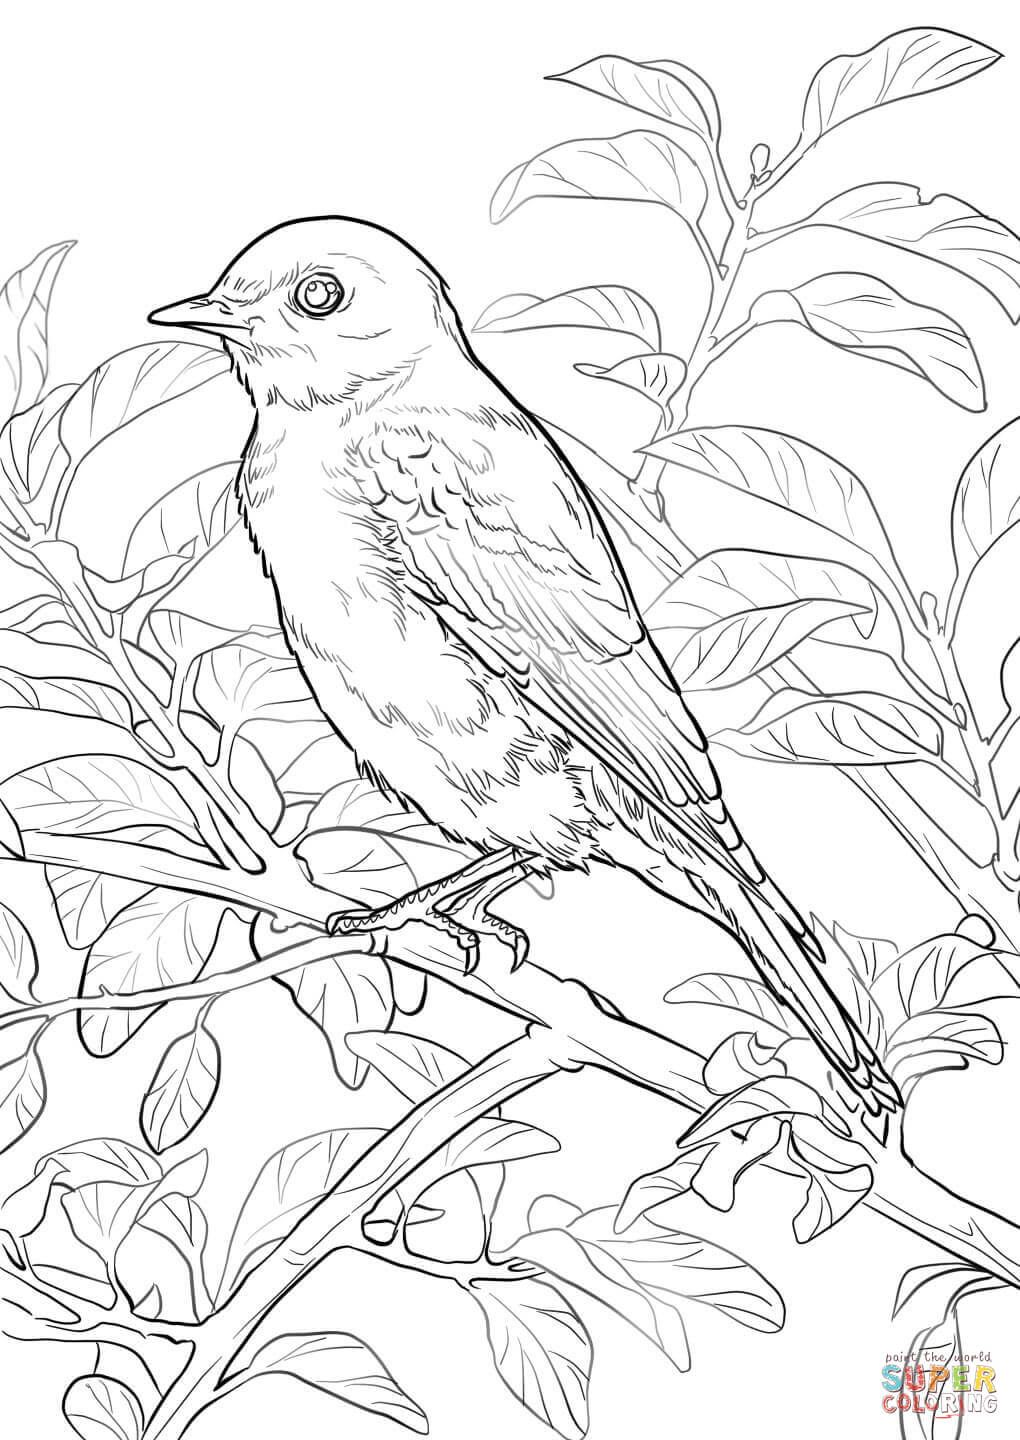 Eastern Bluebird Coloring Page Free Printable Coloring Pages In 2021 Bird Coloring Pages Coloring Pages Flag Coloring Pages